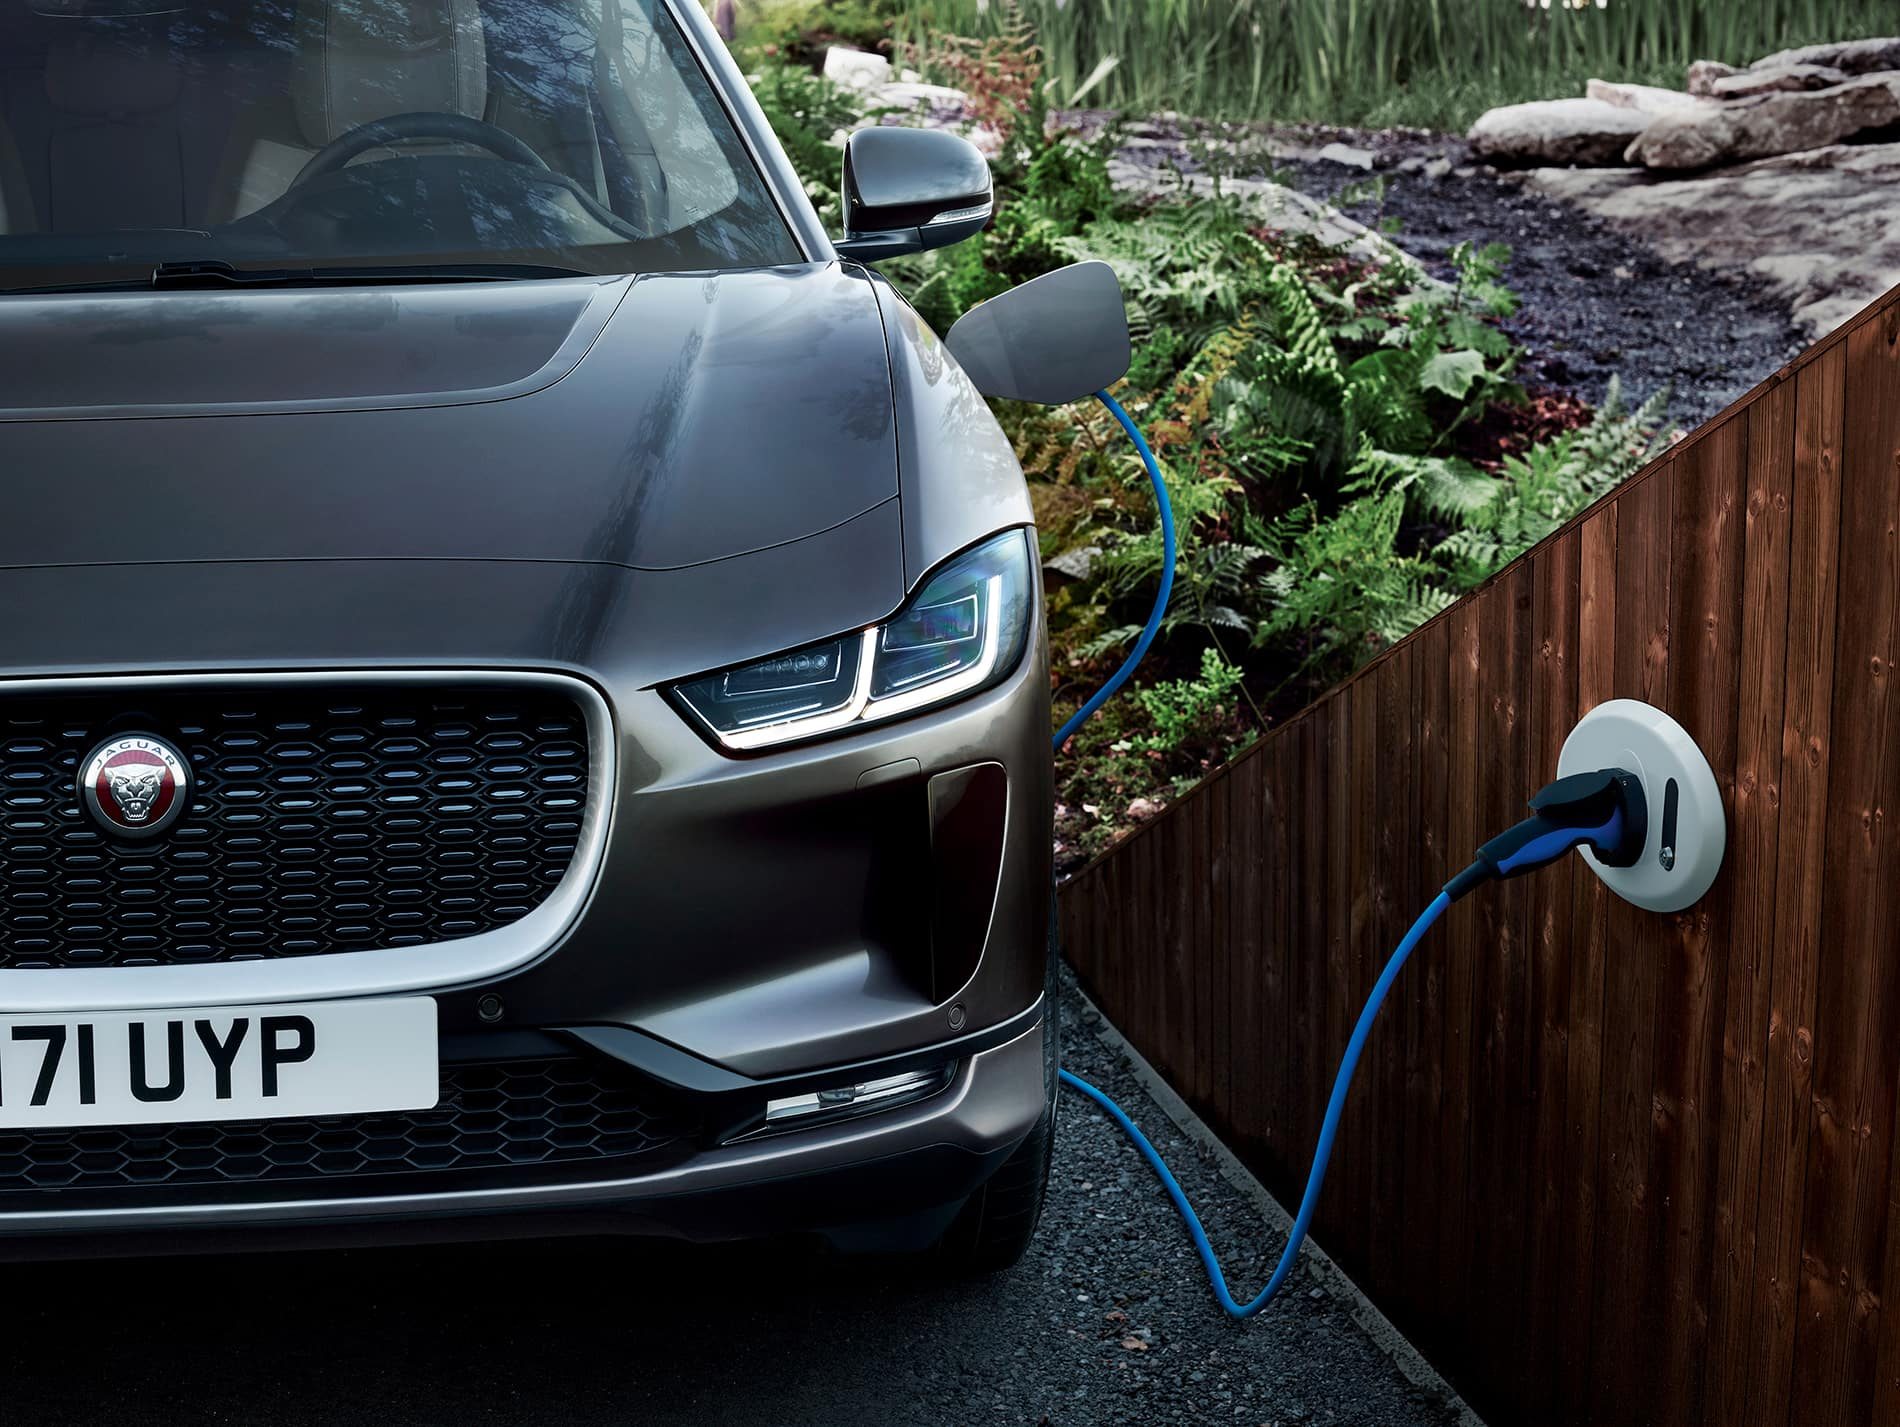 Charging Equipment Jaguar I Pace Plug In Station Electric Vehicle Car Colorado Springs